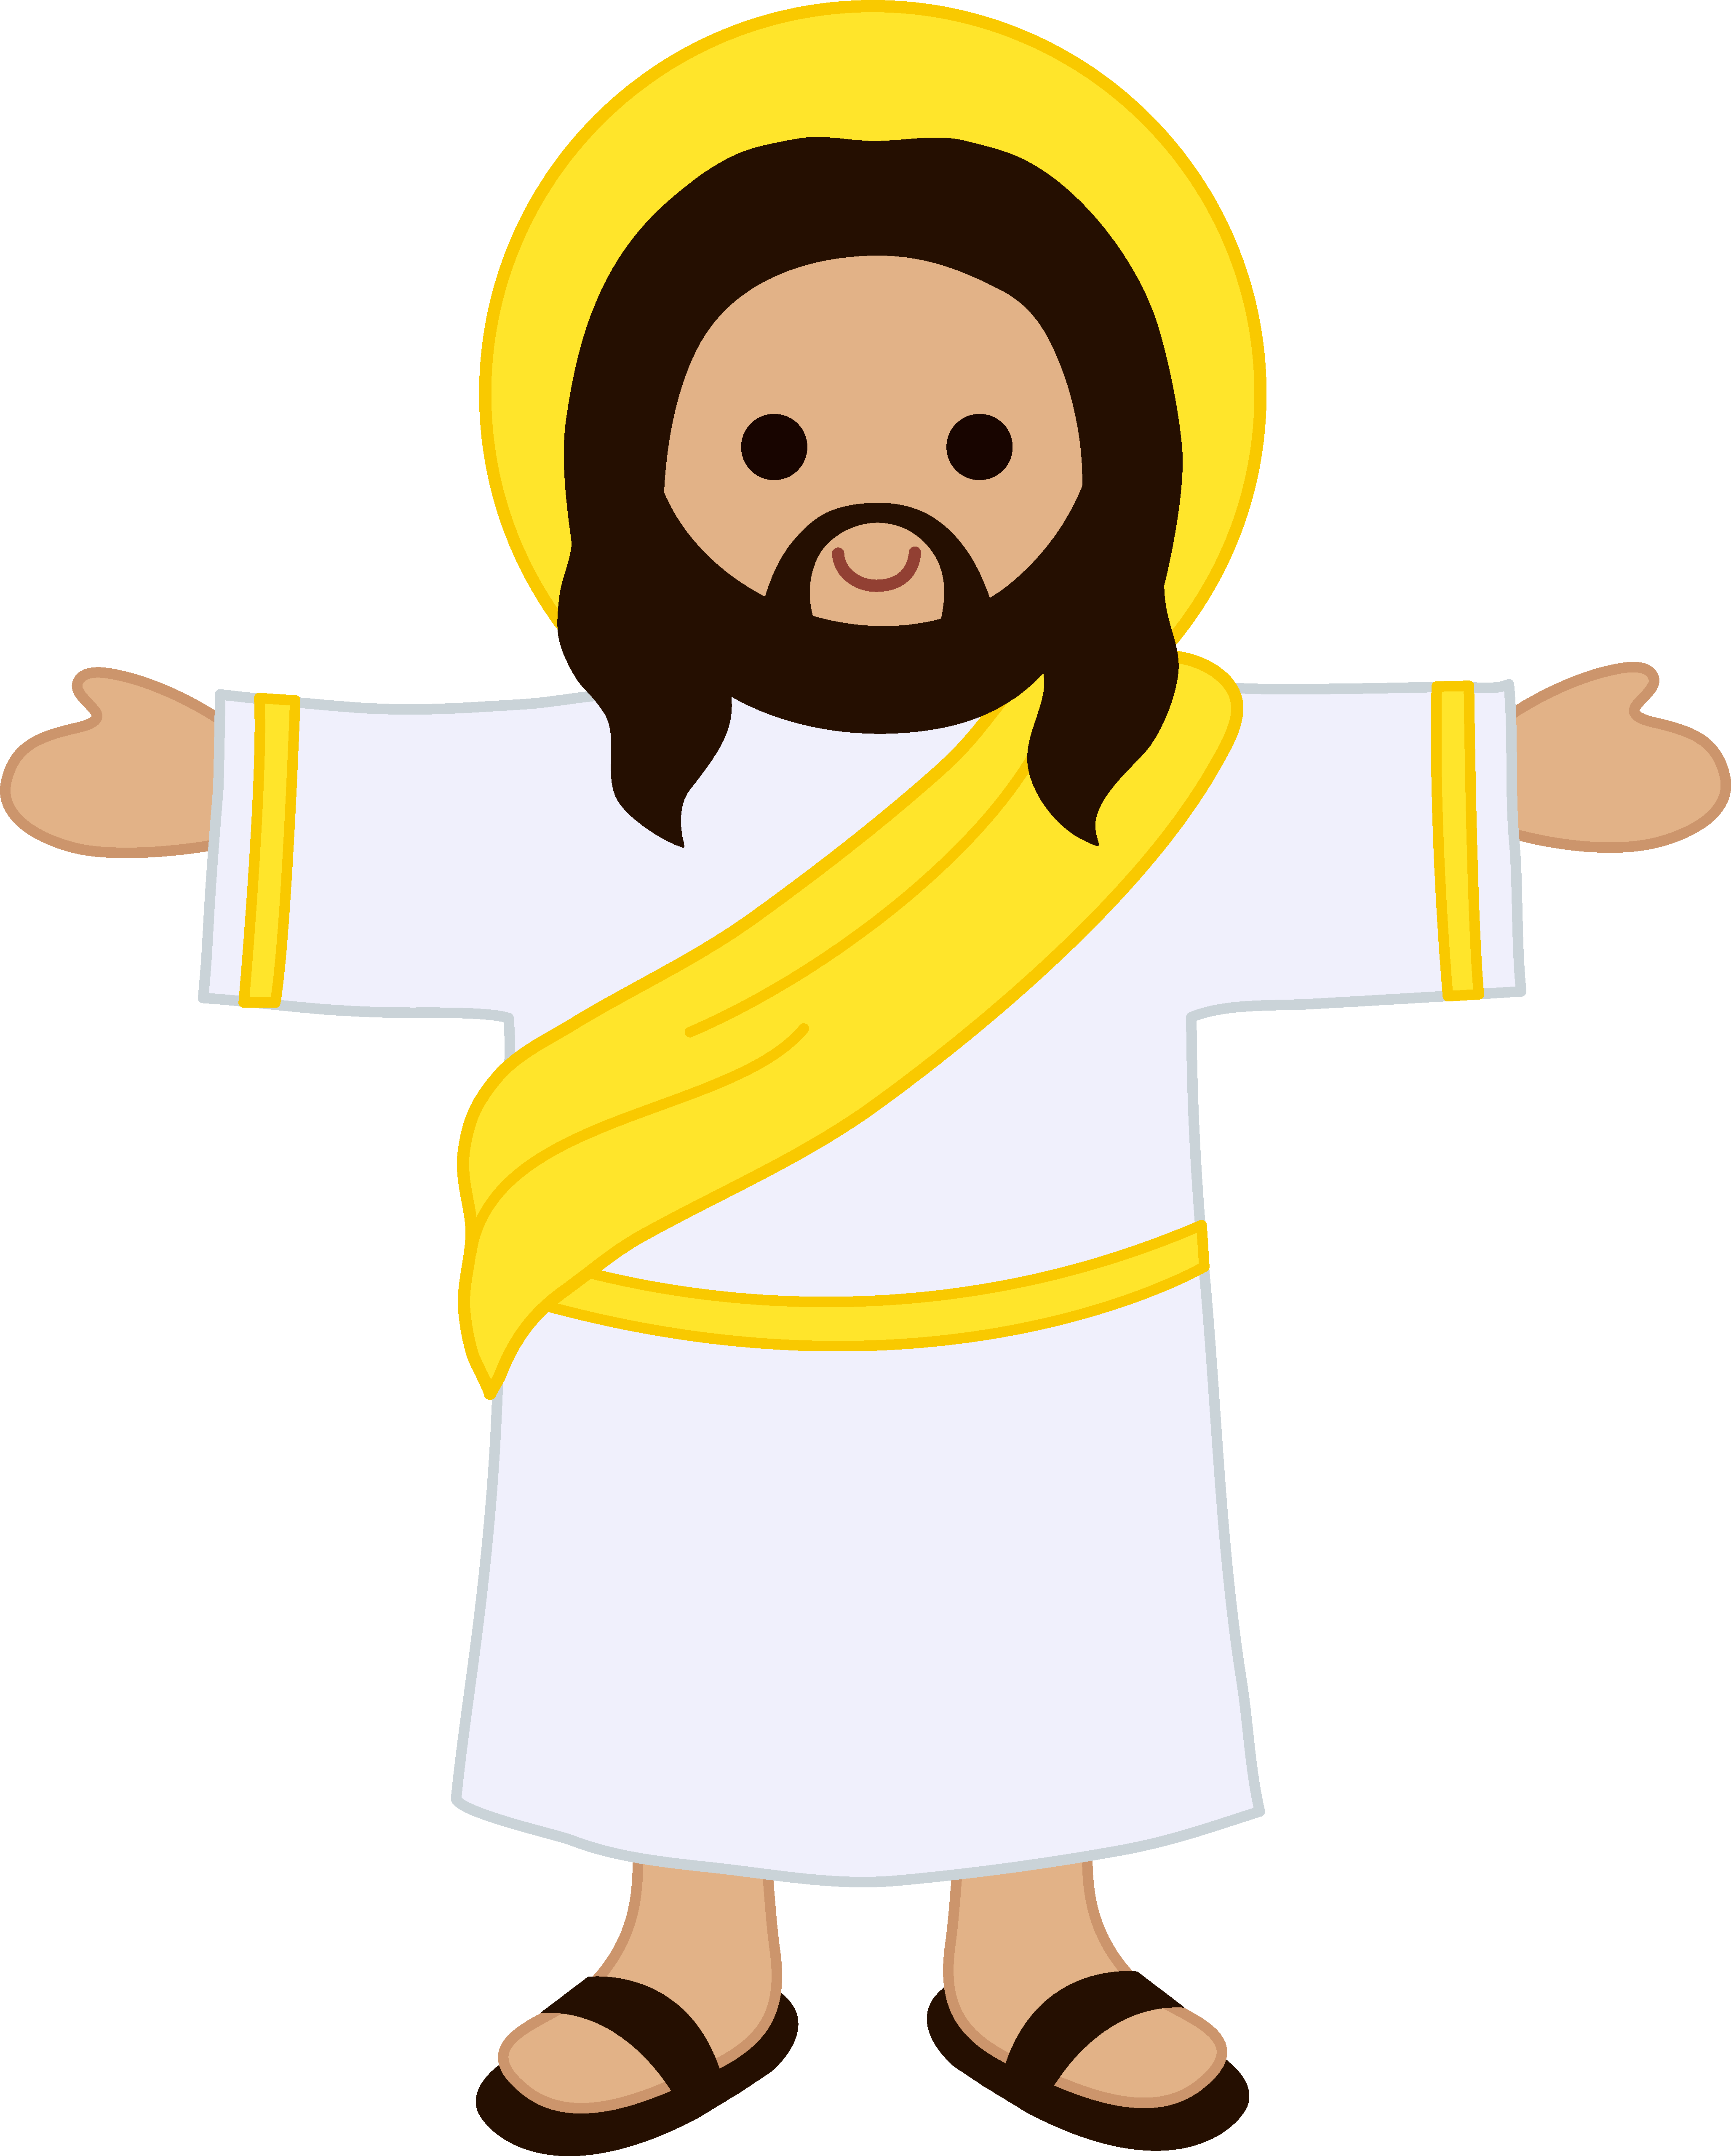 Empty tomb clipart free download on ijcnlp cliparts.